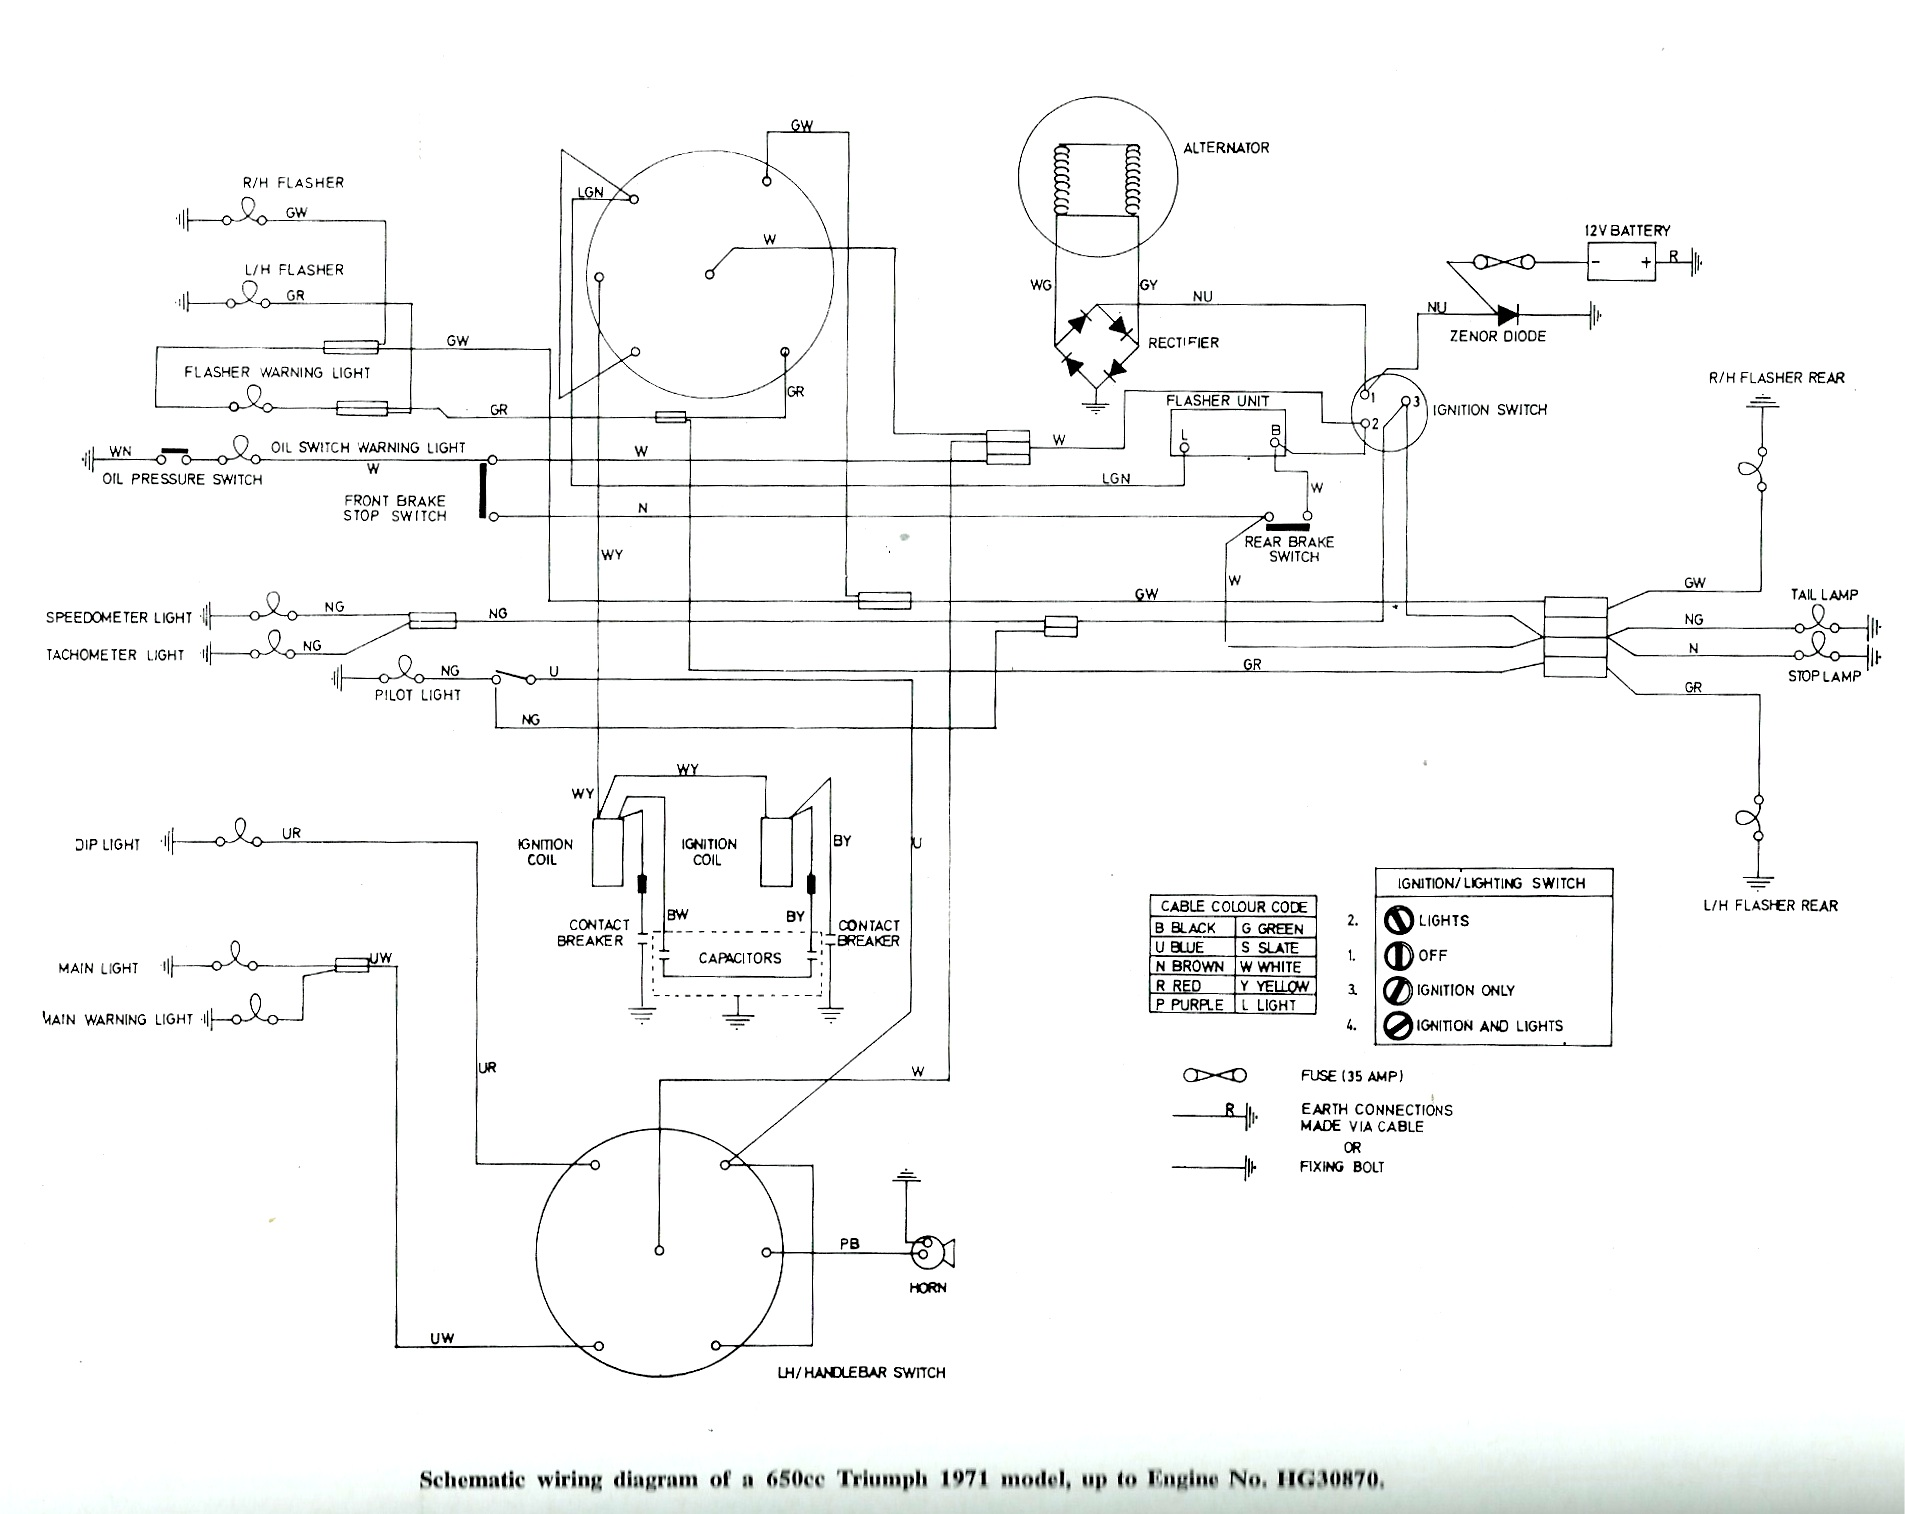 74 Tr6 Wiring Diagram Schematic Electronic Triumph Spitfire Overdrive Gearbox Free Download Archive Of Automotive U2022rhrightbrothersco At Selfit